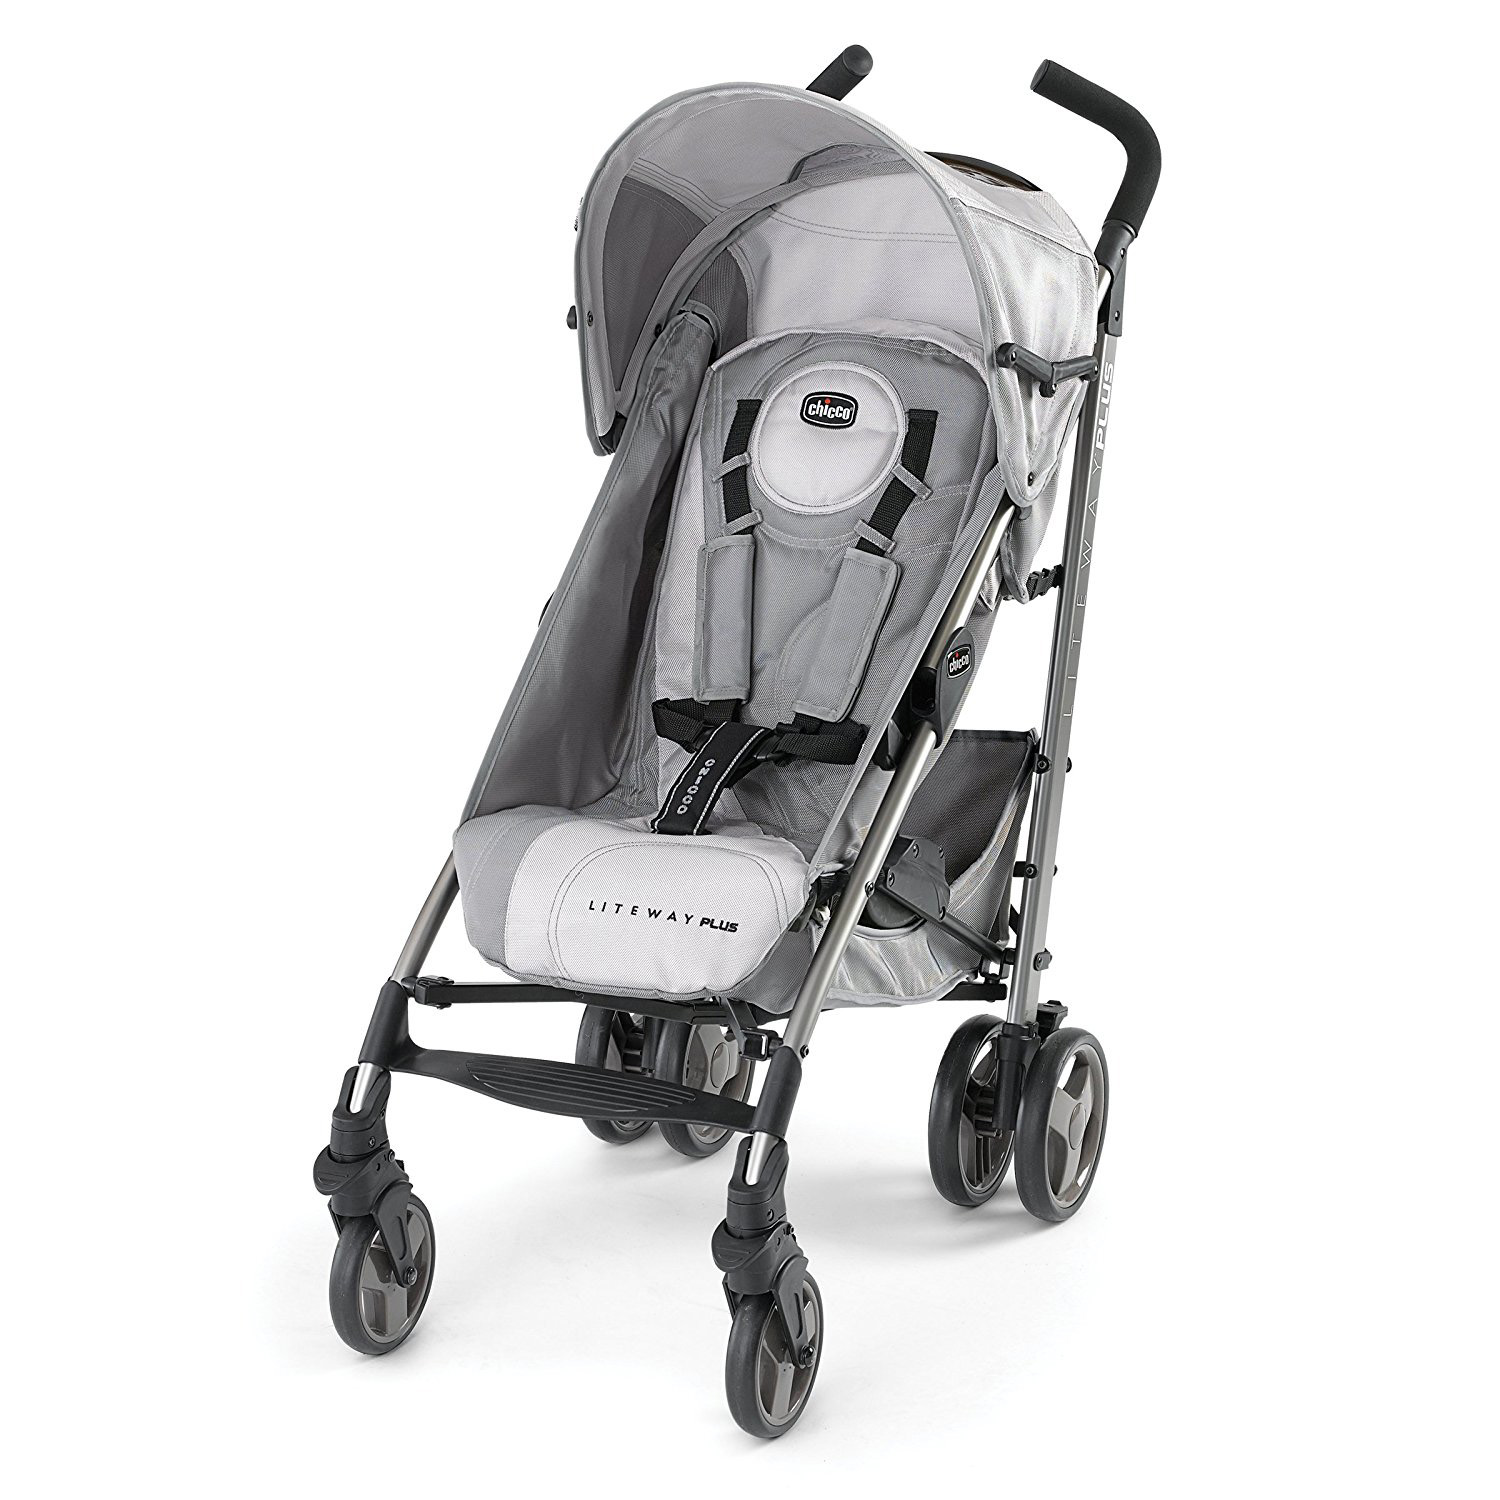 Chicco Liteway Plus 2-in-1 Car Seat Convertible Stroller, Silver | 0707931749